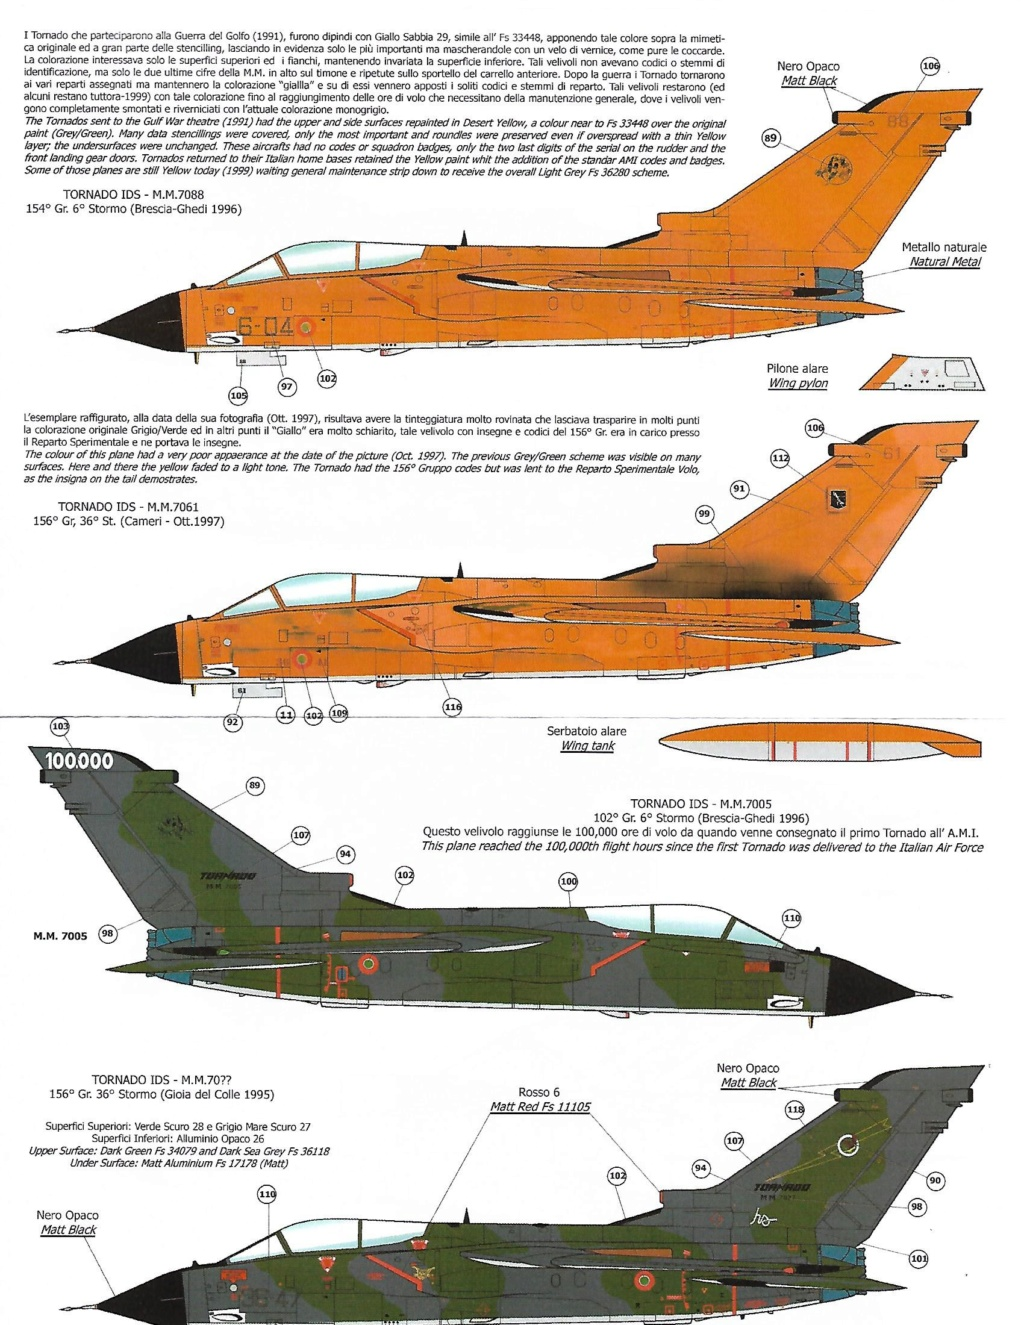 Montage Tornado GR4 Hasegawa - Page 2 Scan_t15